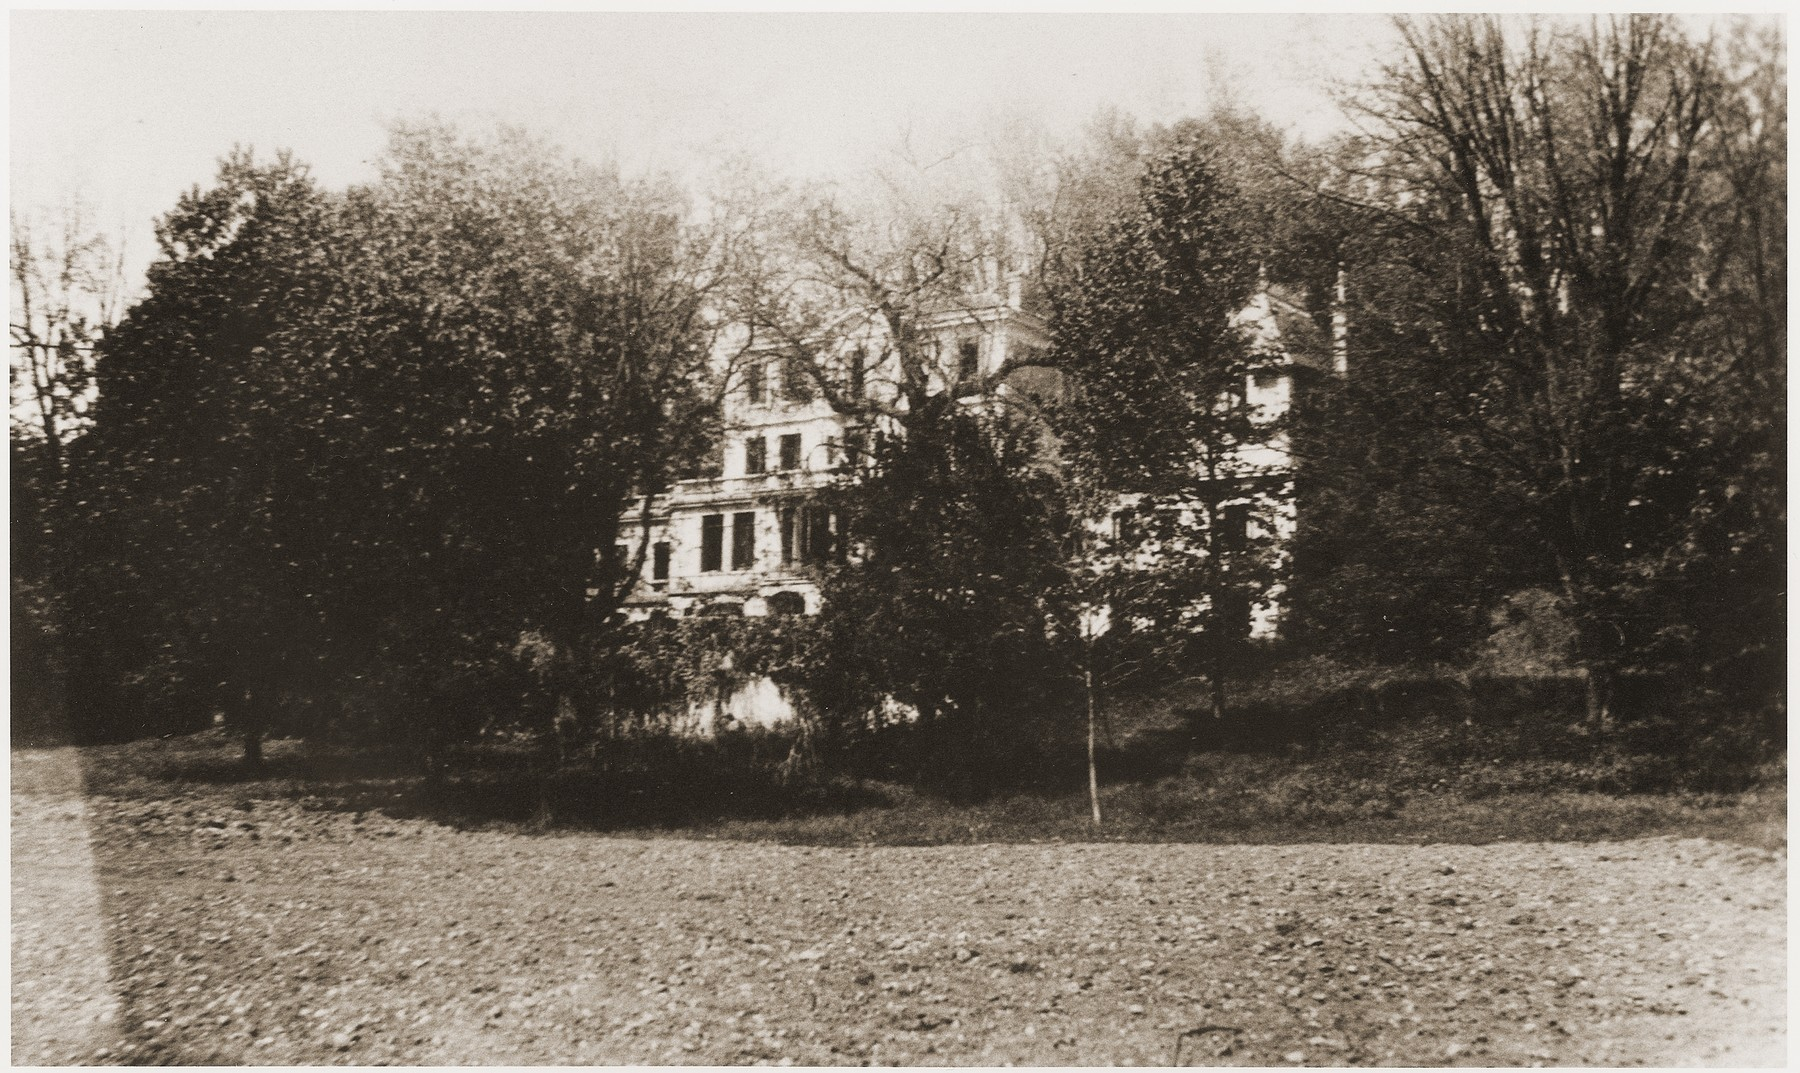 View of the Chateau de Montluel children's home near Lyon, where children released from the Rivesaltes internment camp were brought in the spring of 1942.